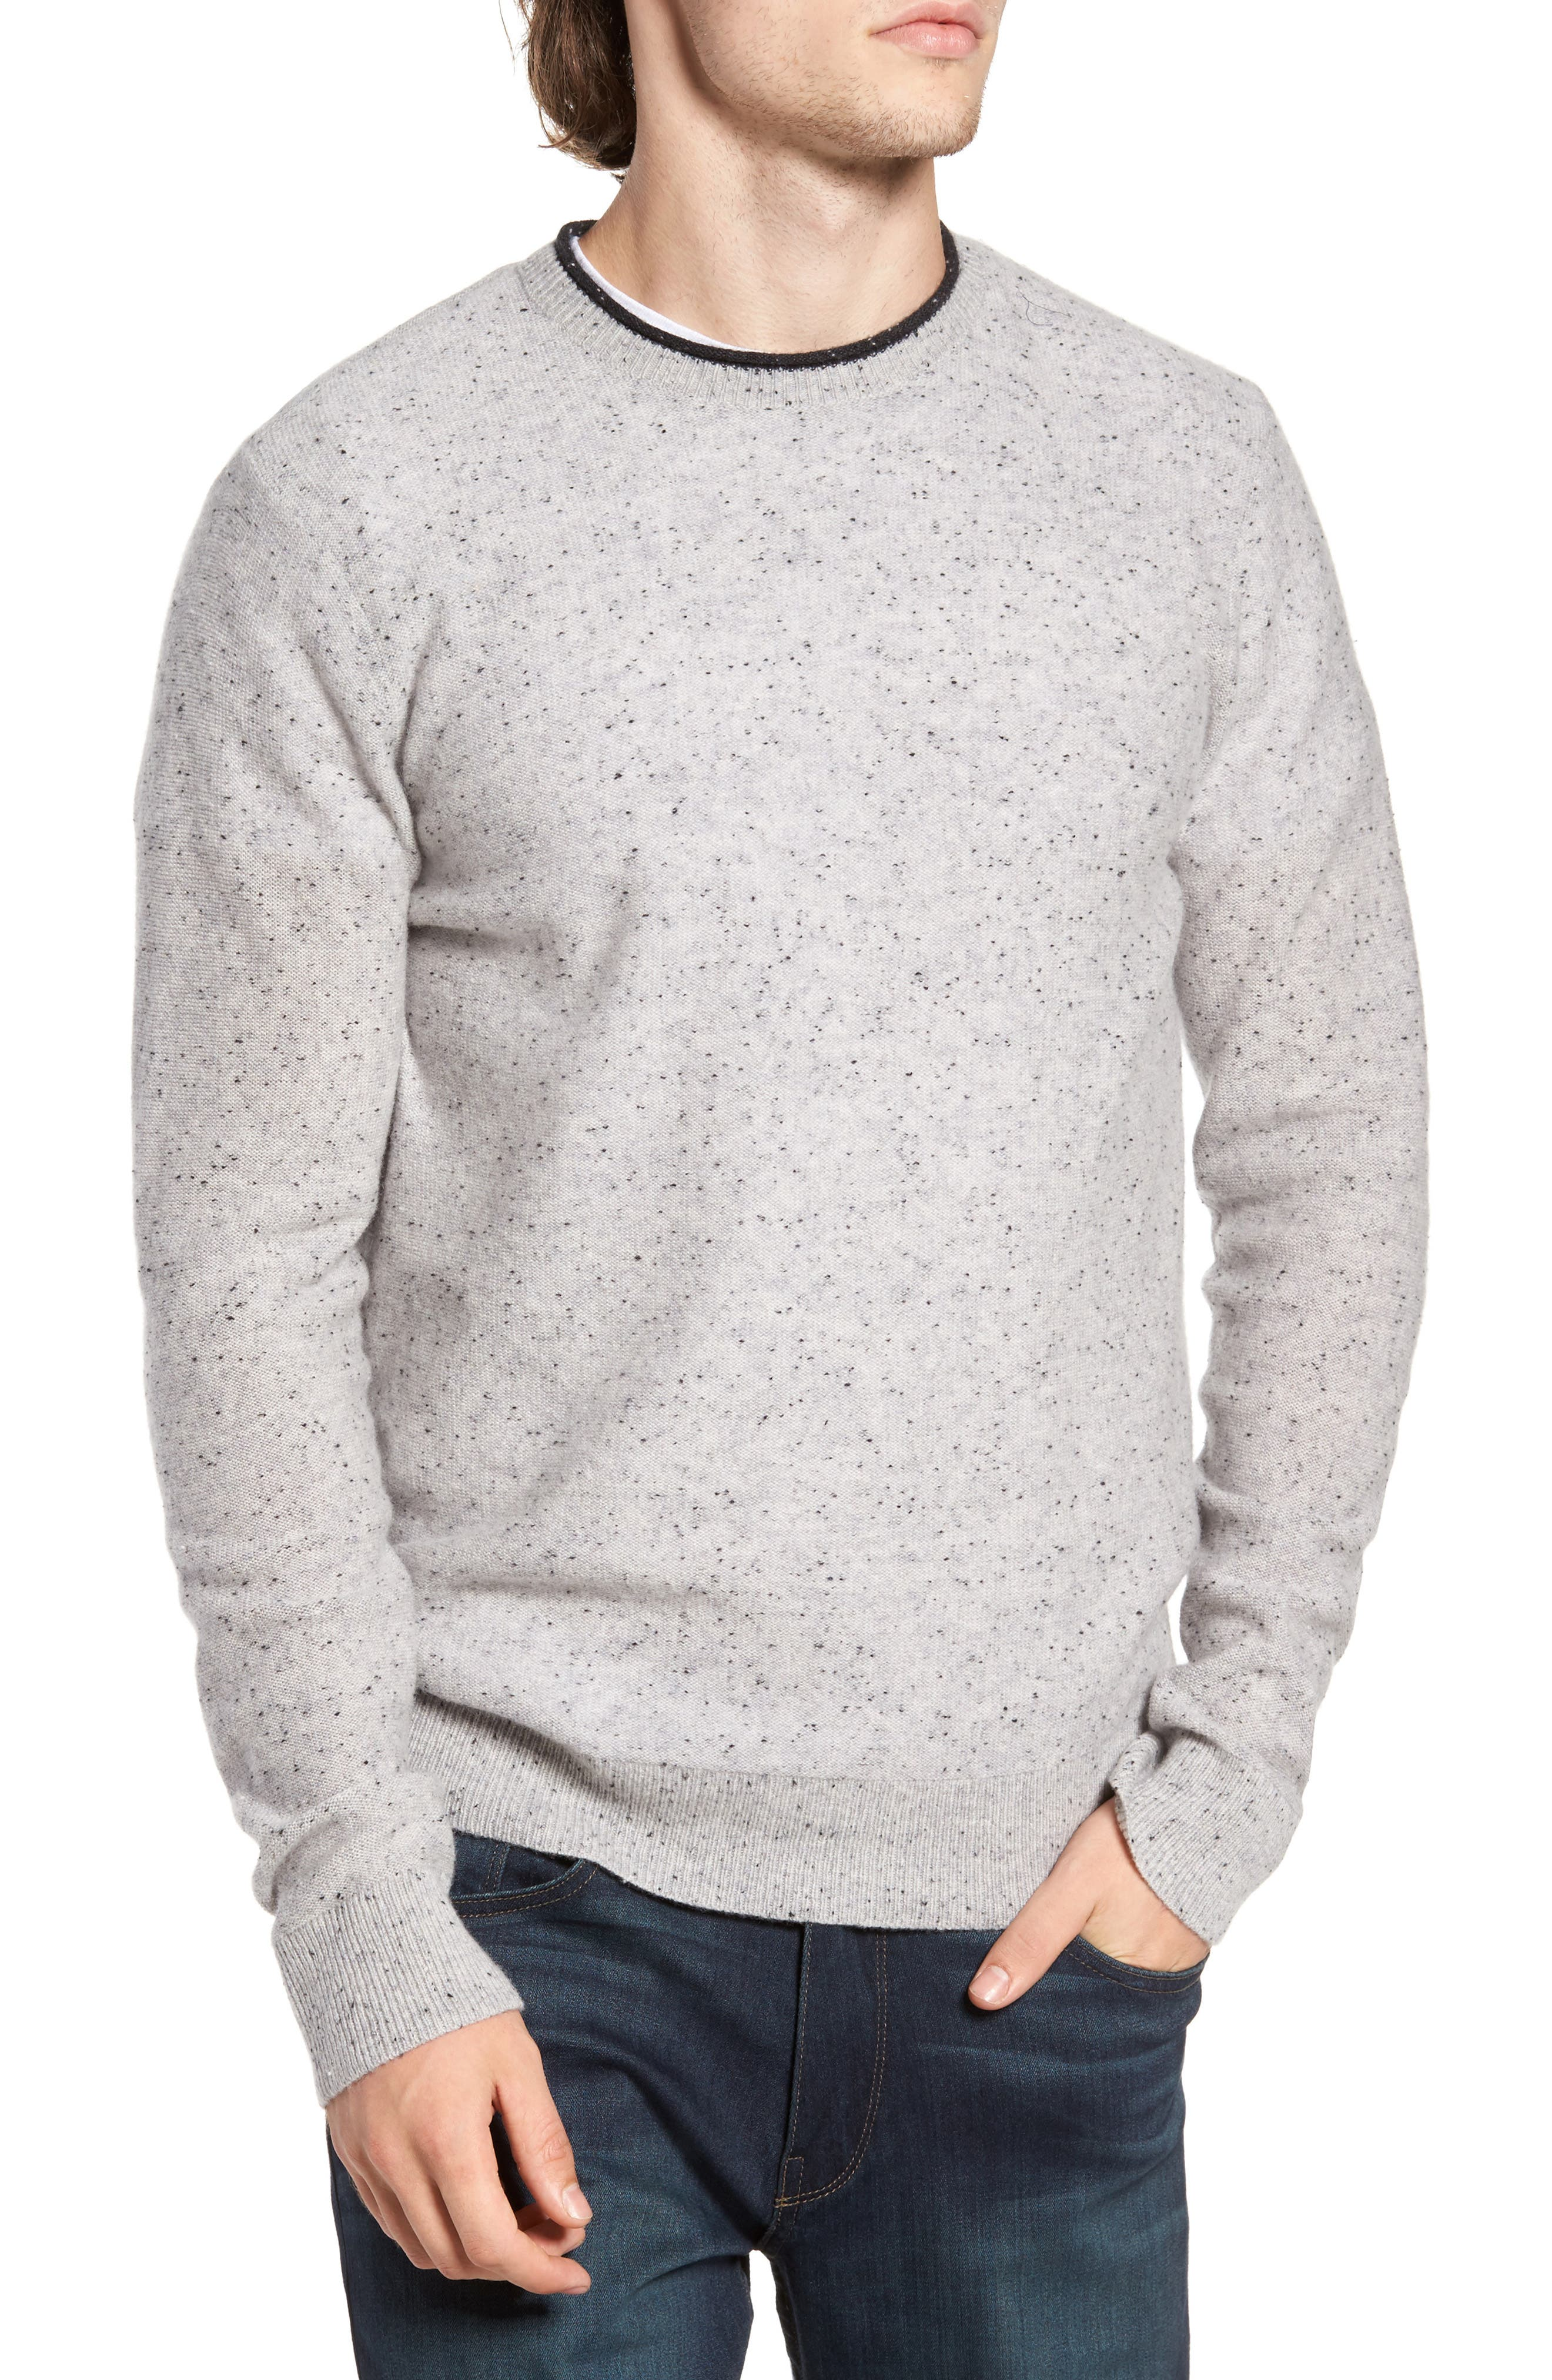 Nep Wool & Cashmere Sweater,                         Main,                         color, Grey Donegal